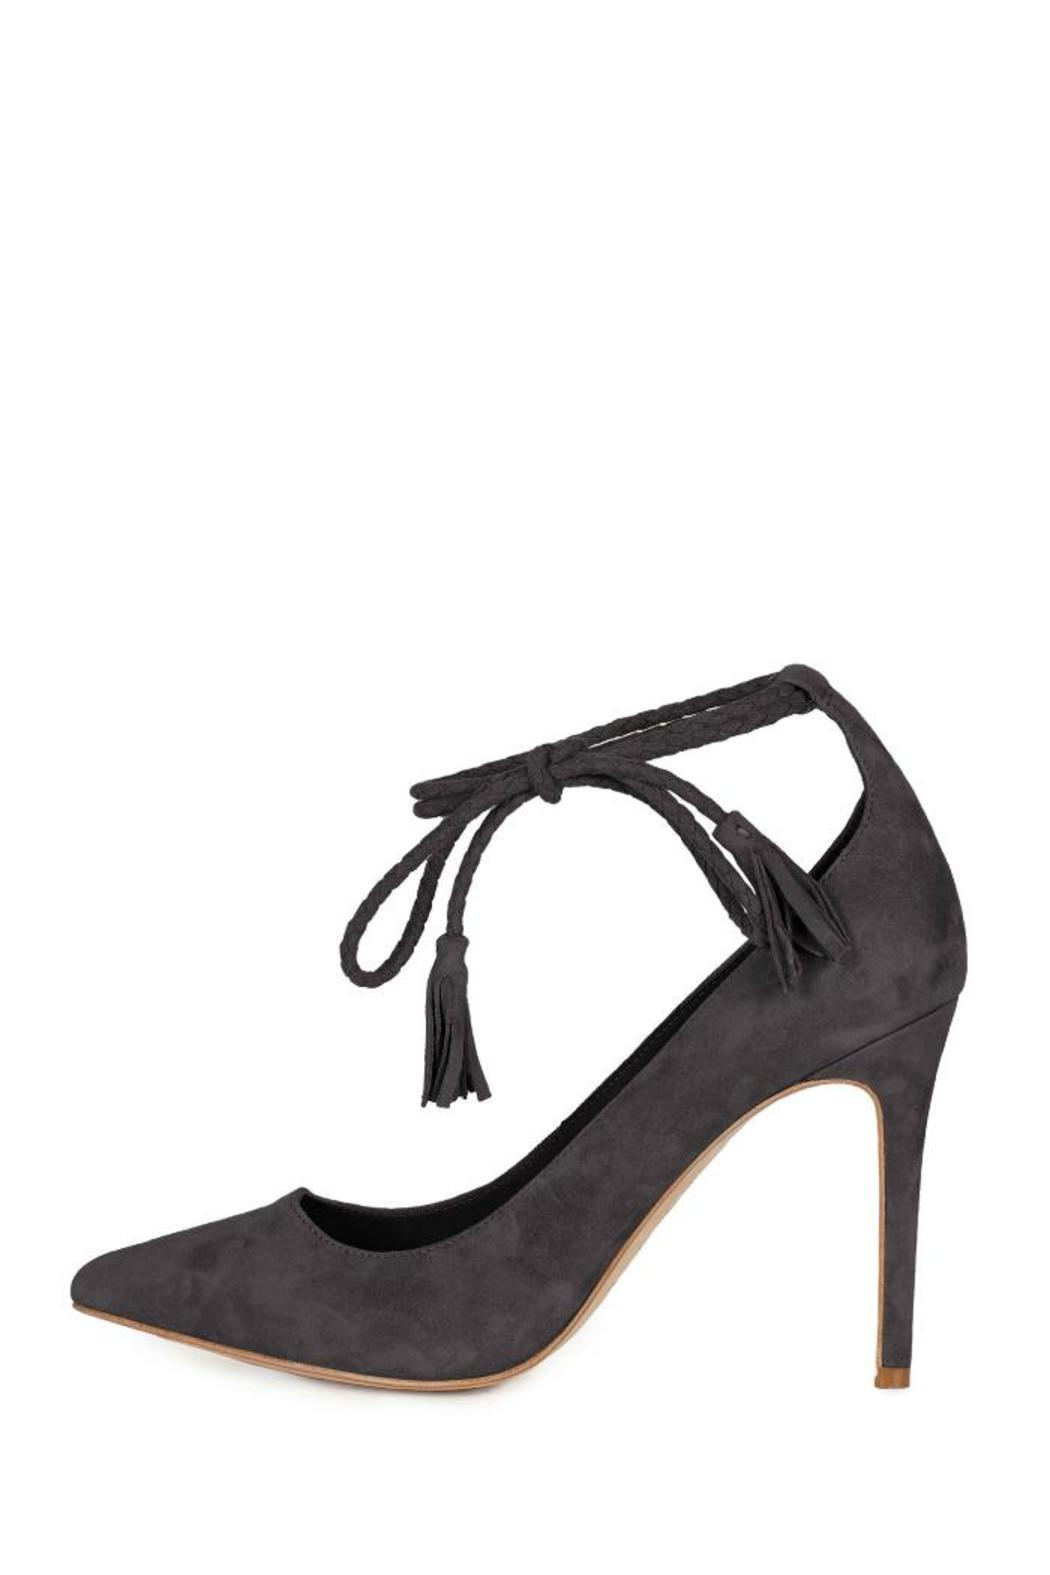 Joie Angelynn Suede Pumps - Main Image